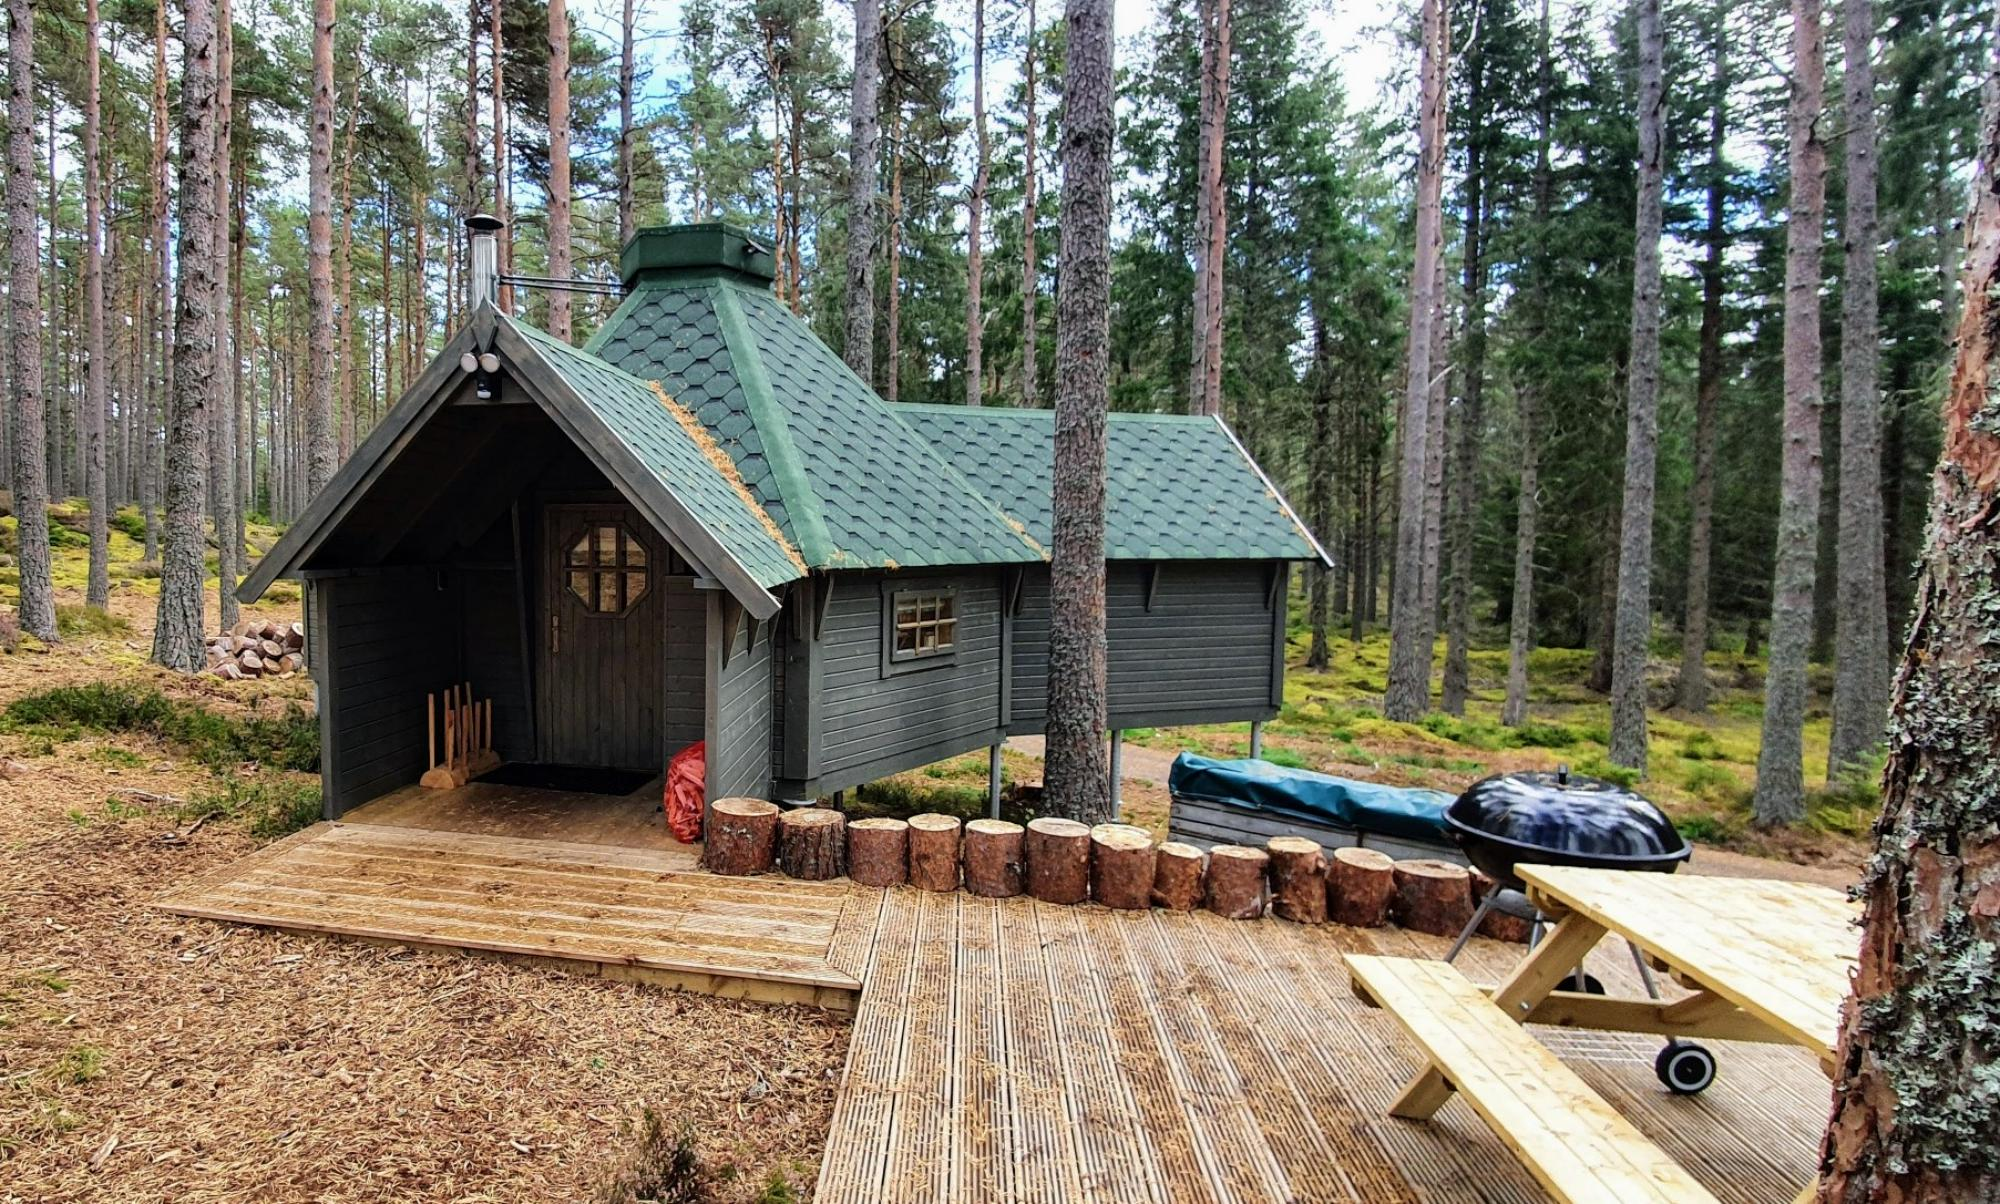 Self-Catering in East Scotland holidays at Cool Places